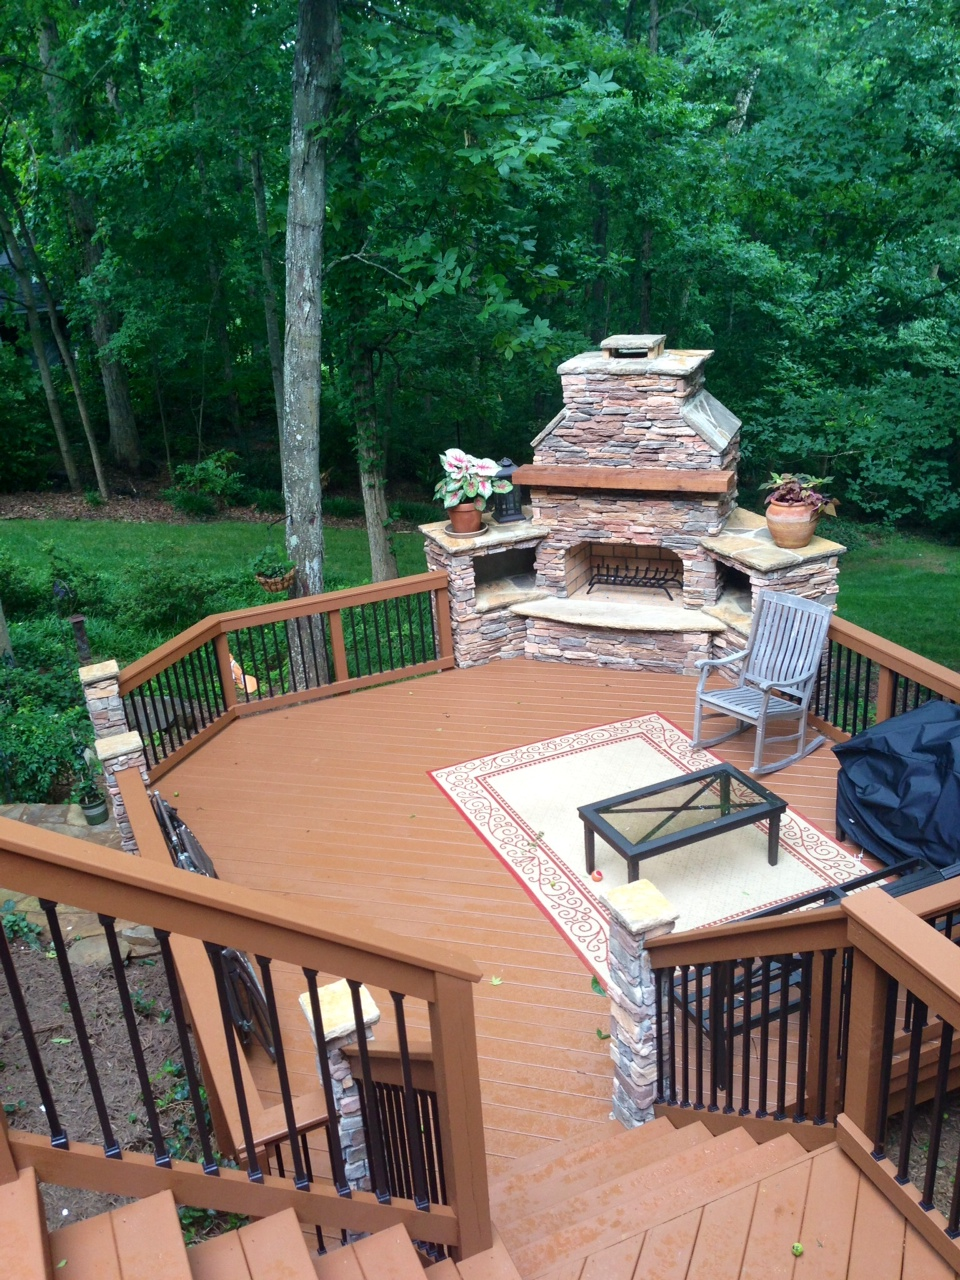 Deck design ideas archadeck of charlotte multi level deck with stone outdoor fireplace by archadeck of charlotte baanklon Image collections